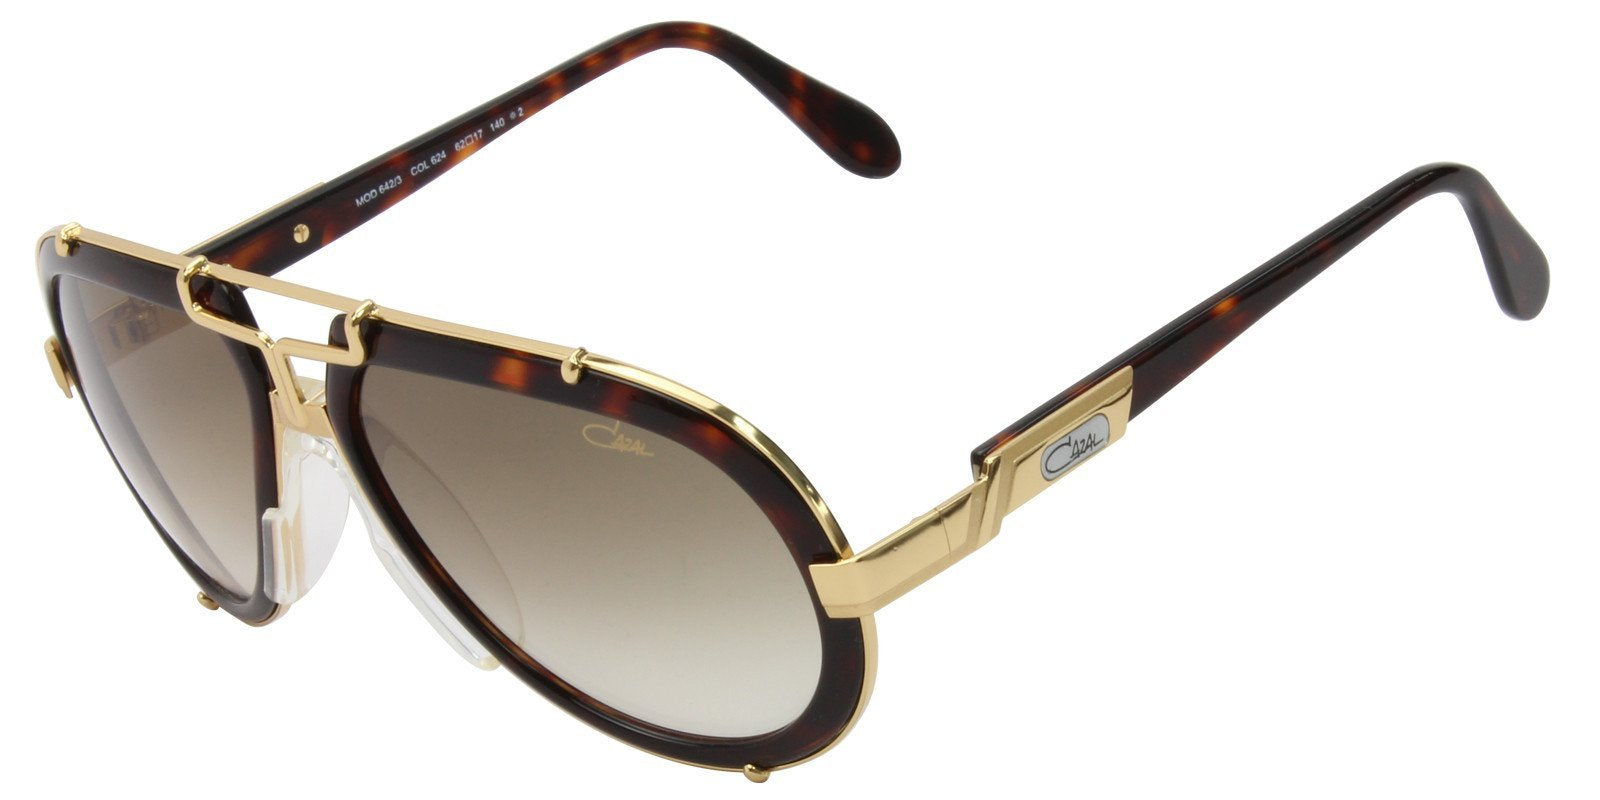 3cfe0f0714e8 Cazal - CZ 642 3 Gold - Brown sunglasses– Designer Eyes